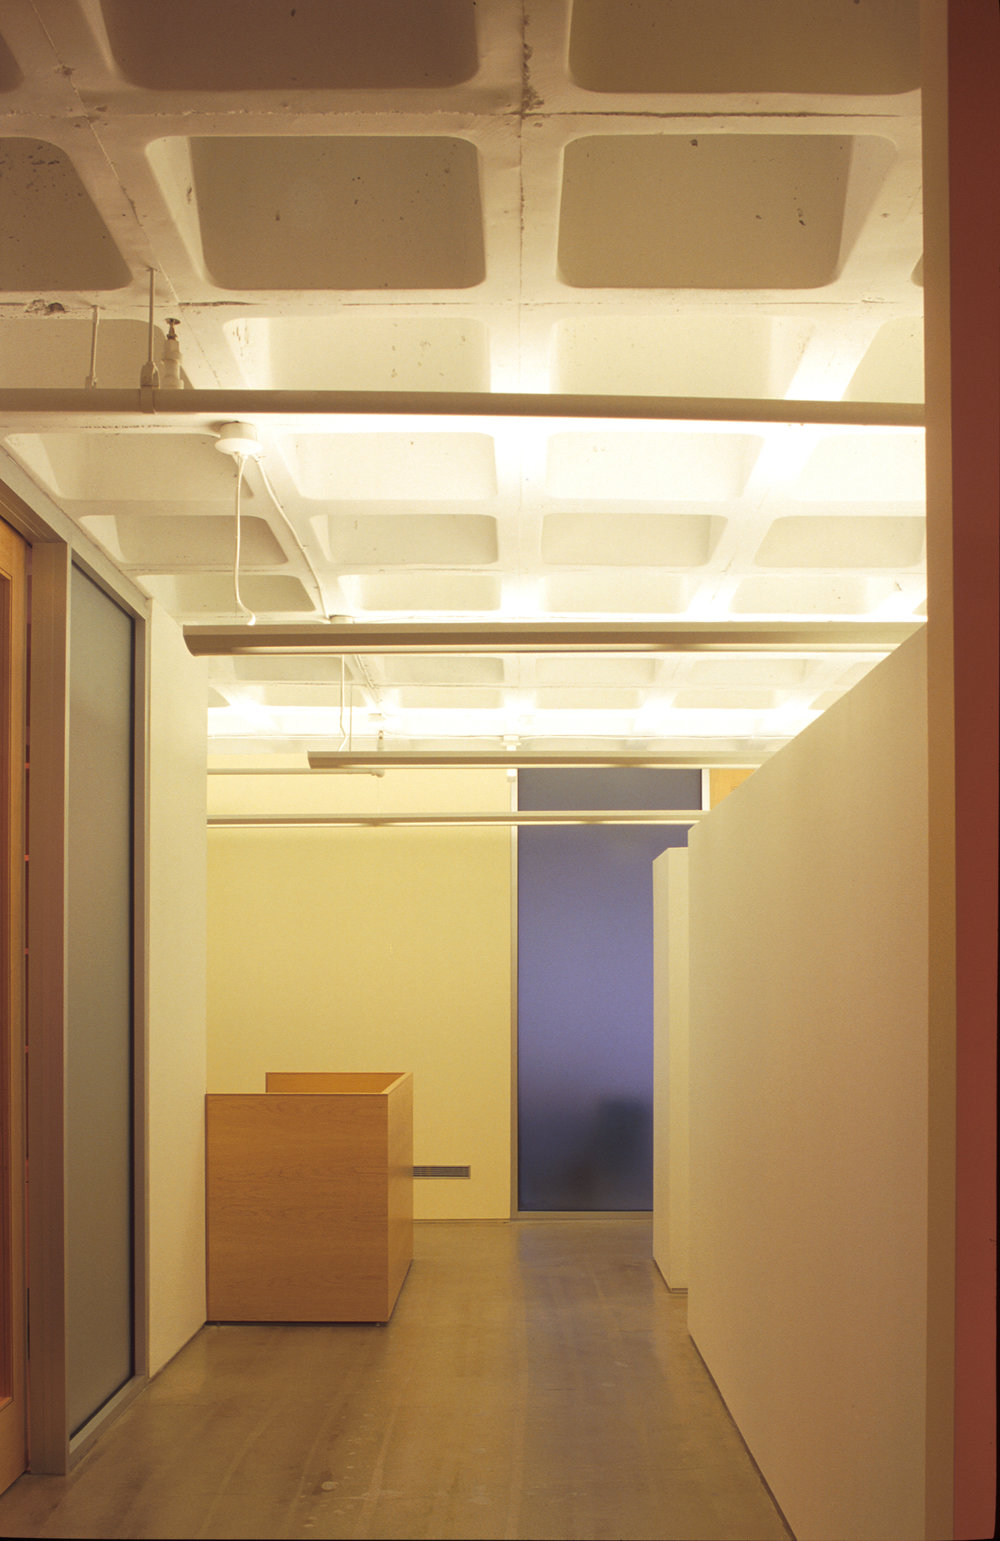 01-BPG - corridor to work station 1A.jpg